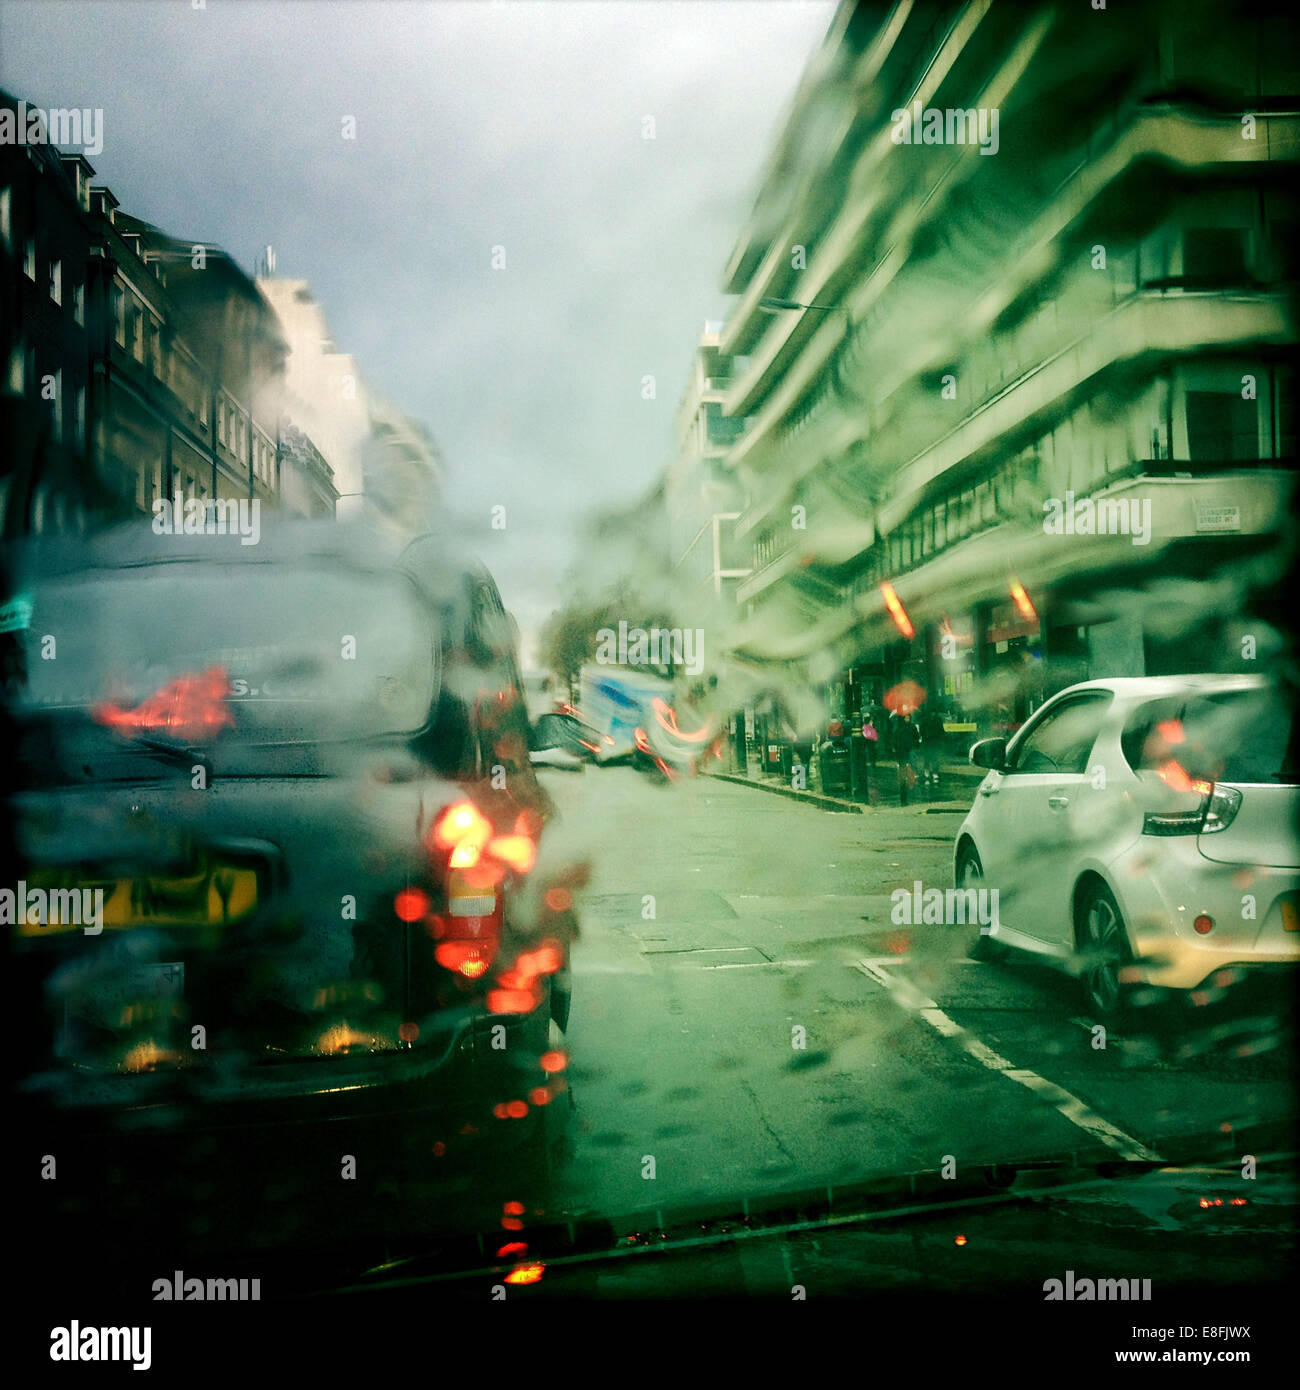 UK, Londres, Kensington, Knightsbridge, Taxi et voiture par temps humide Photo Stock